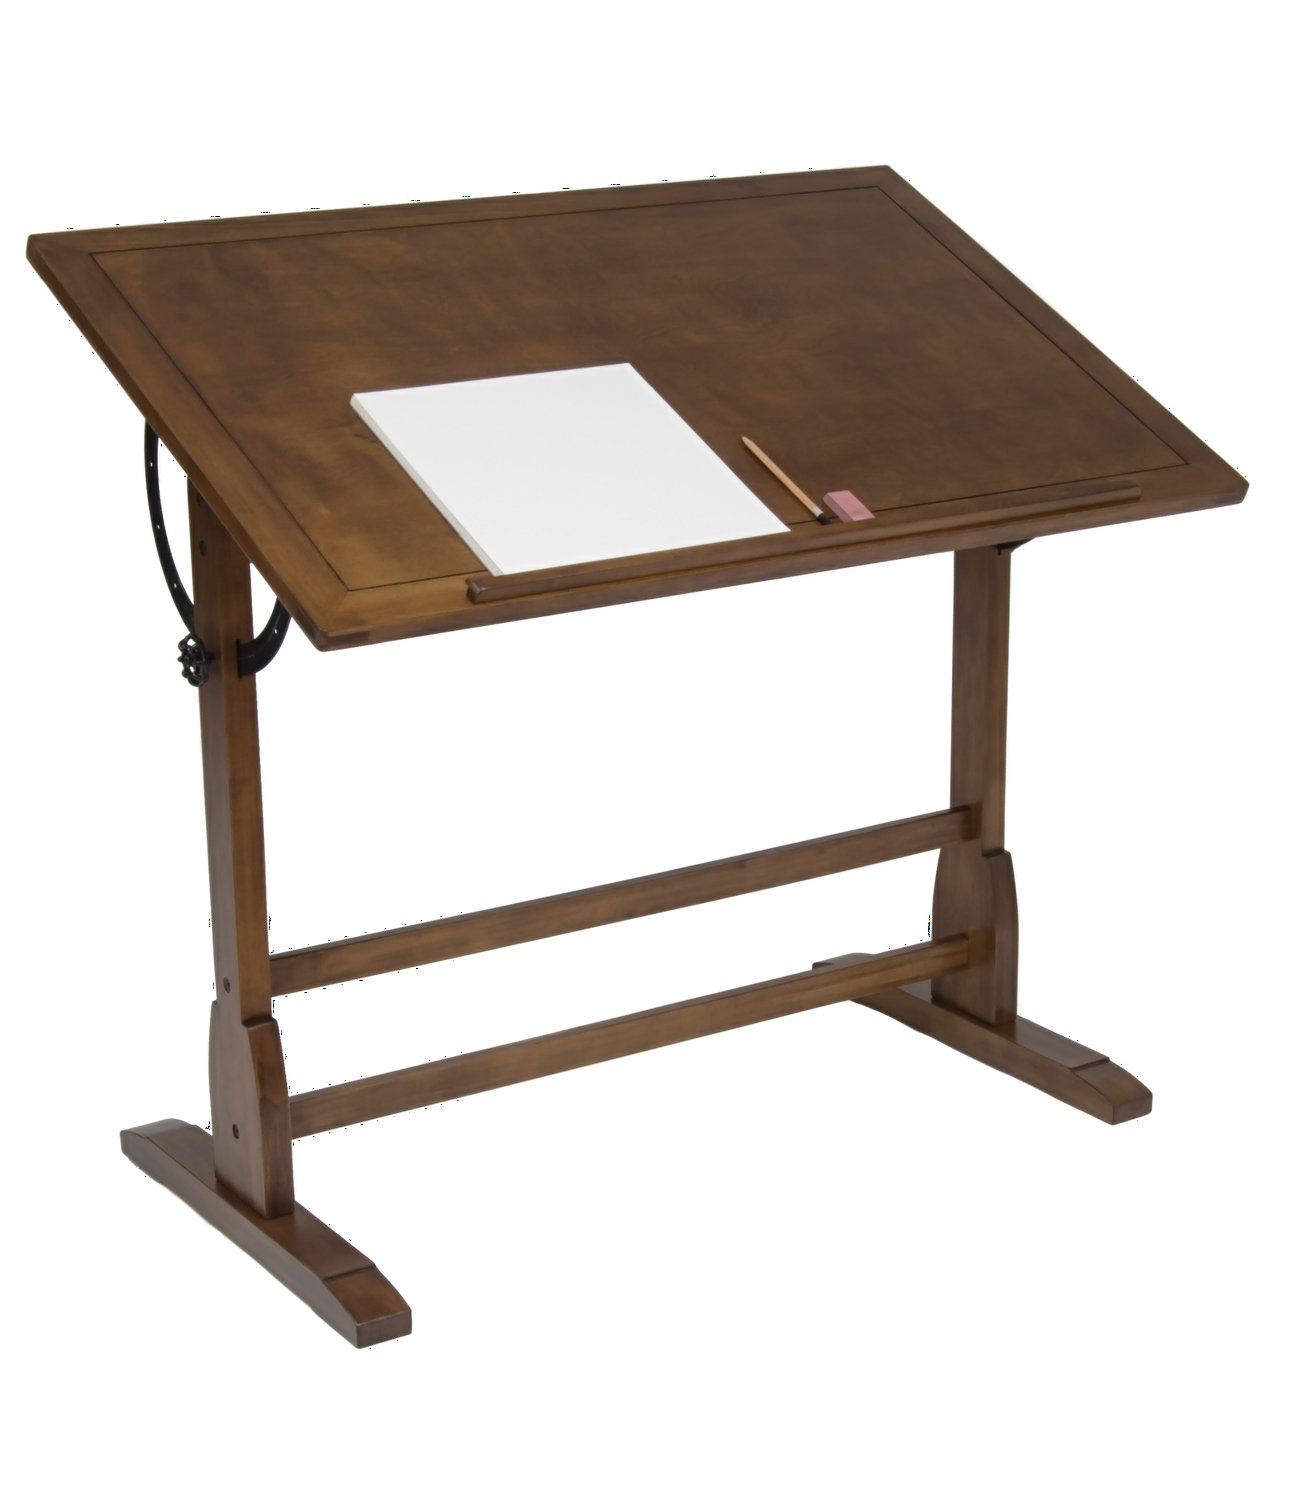 Amazon com offex elegant distressed wood vintage drafting table rustic oak 42 x 30 home kitchen